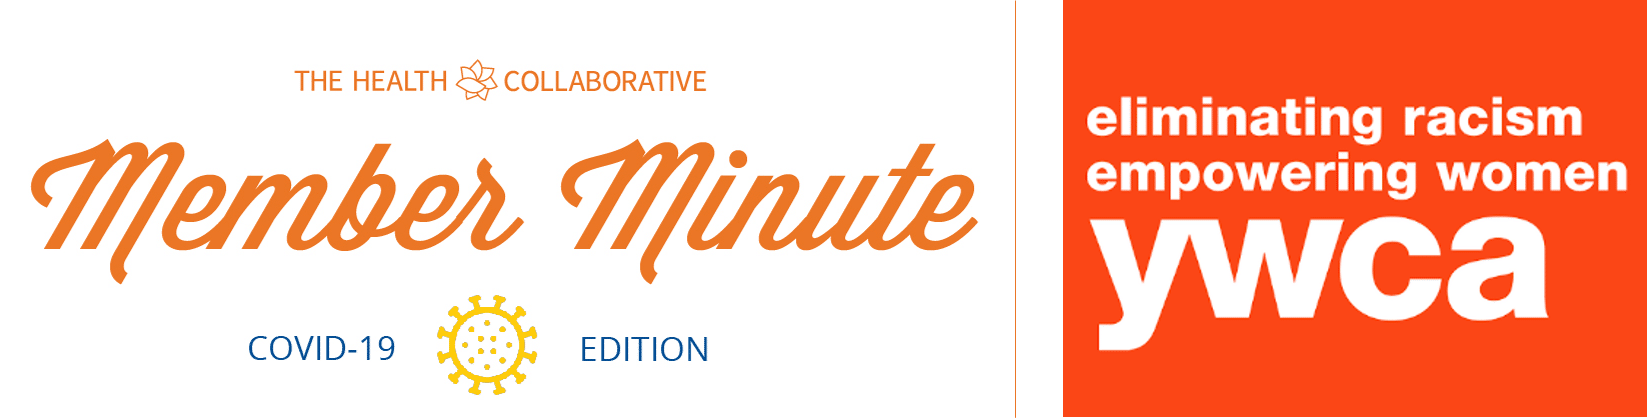 Member Minute: COVID-19 Edition – YWCA